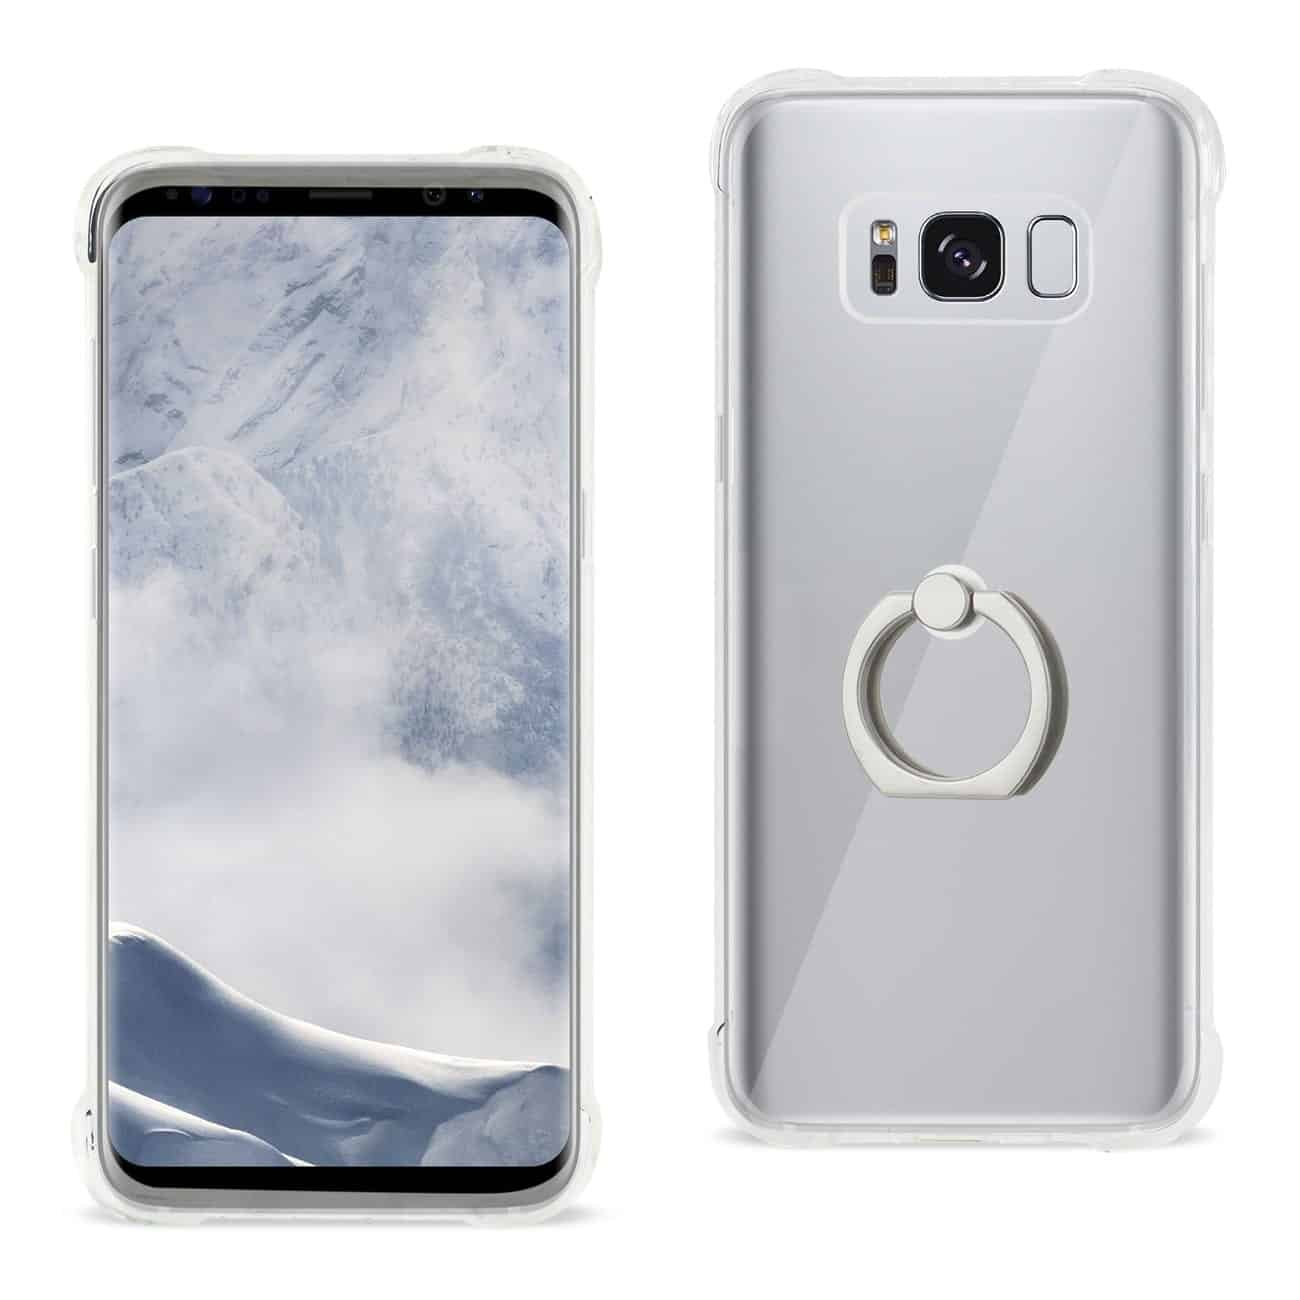 Samsung Galaxy S8 Transparent Air Cushion Protector Bumper Case With Ring Holder In Clear